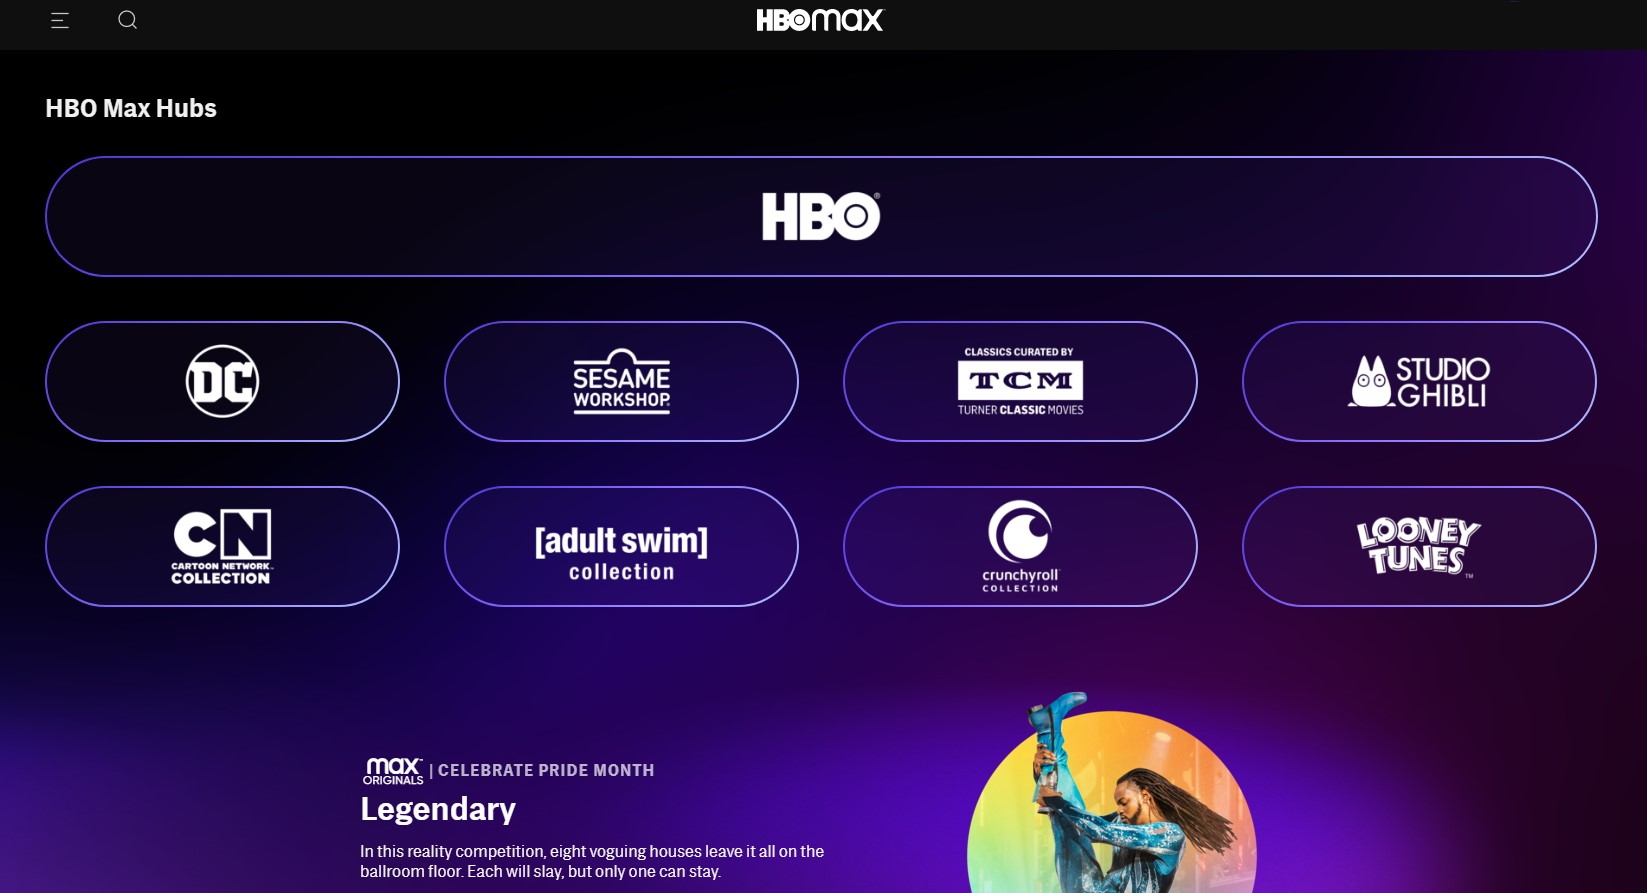 HBO Max content hubs